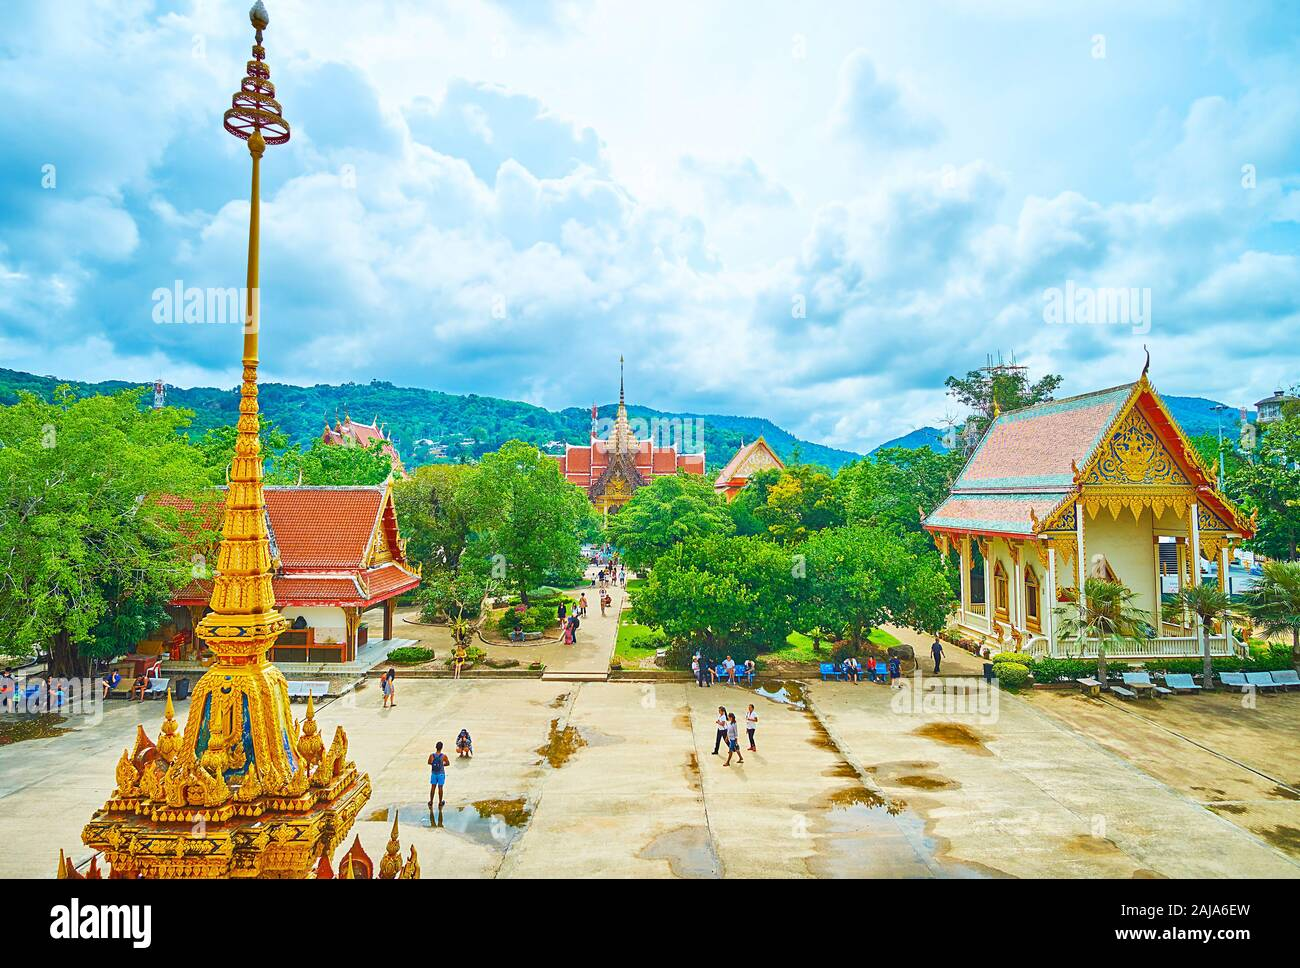 CHALONG, THAILAND - APRIL 30, 2019: The shrines on the grounds of Wat Chalong temple complex with a view on the spire and finial of the chedi on the f Stock Photo